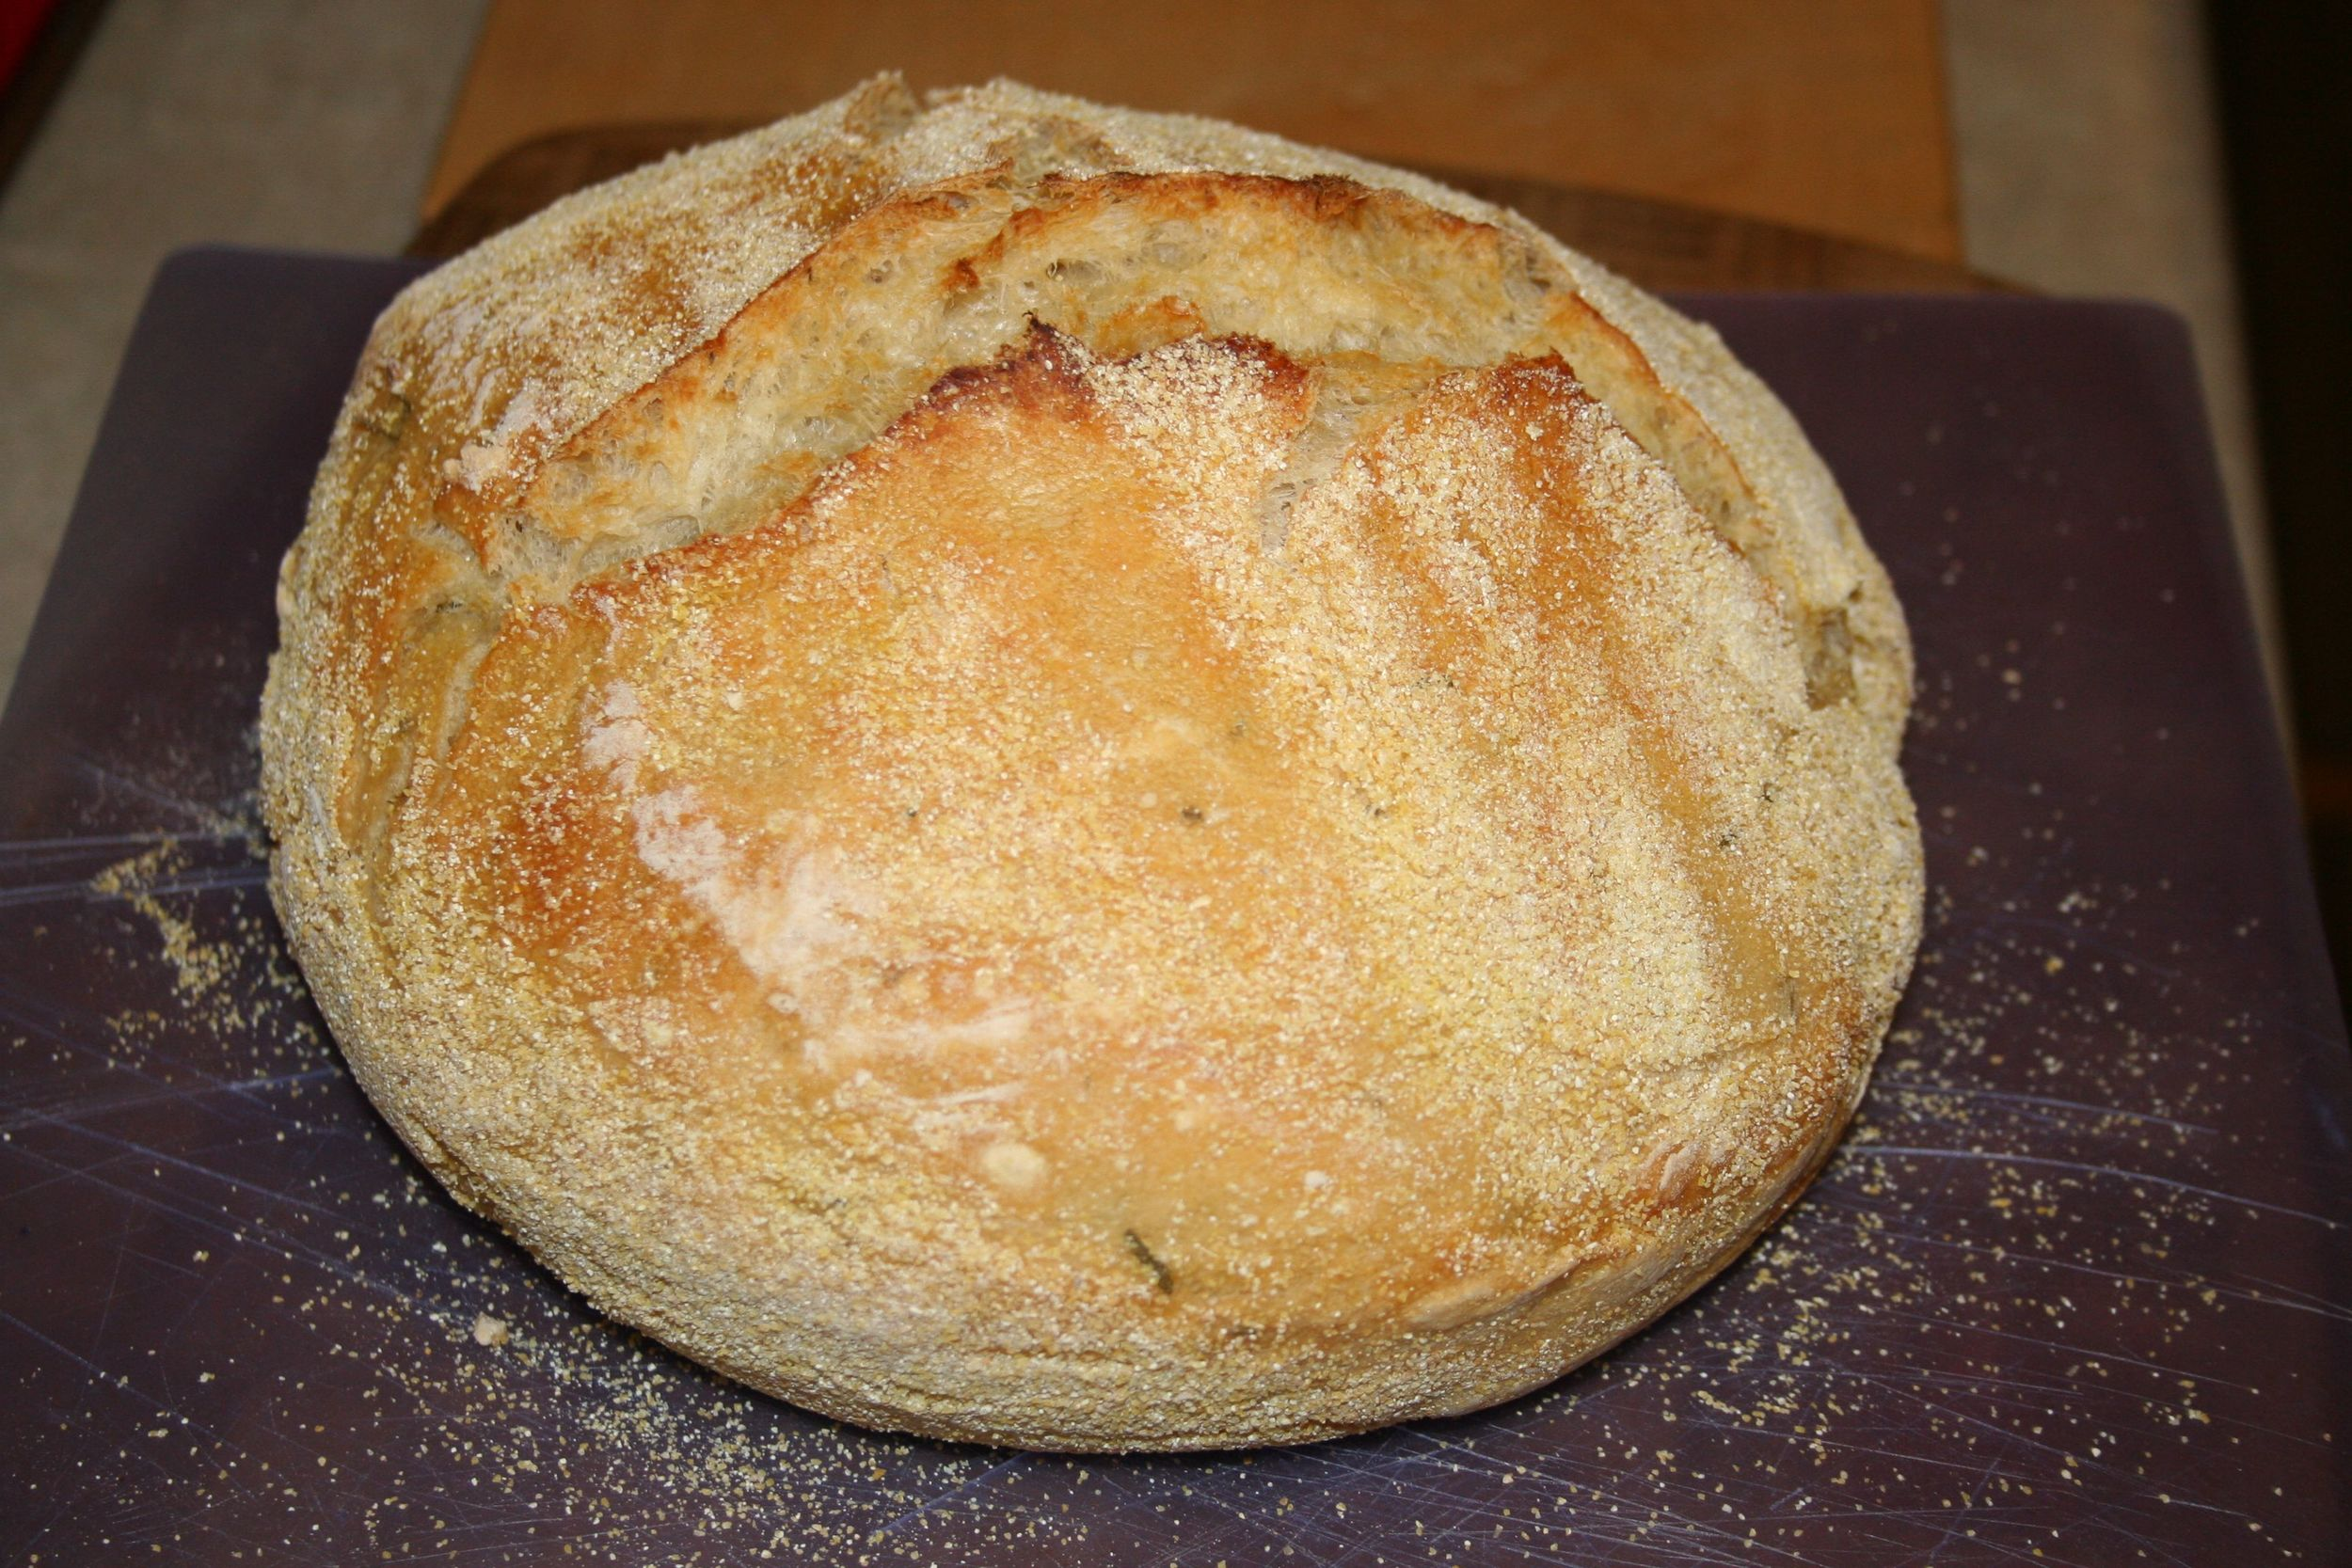 This is the easiest and most amazing tasting home-made bread I have ever tasted!